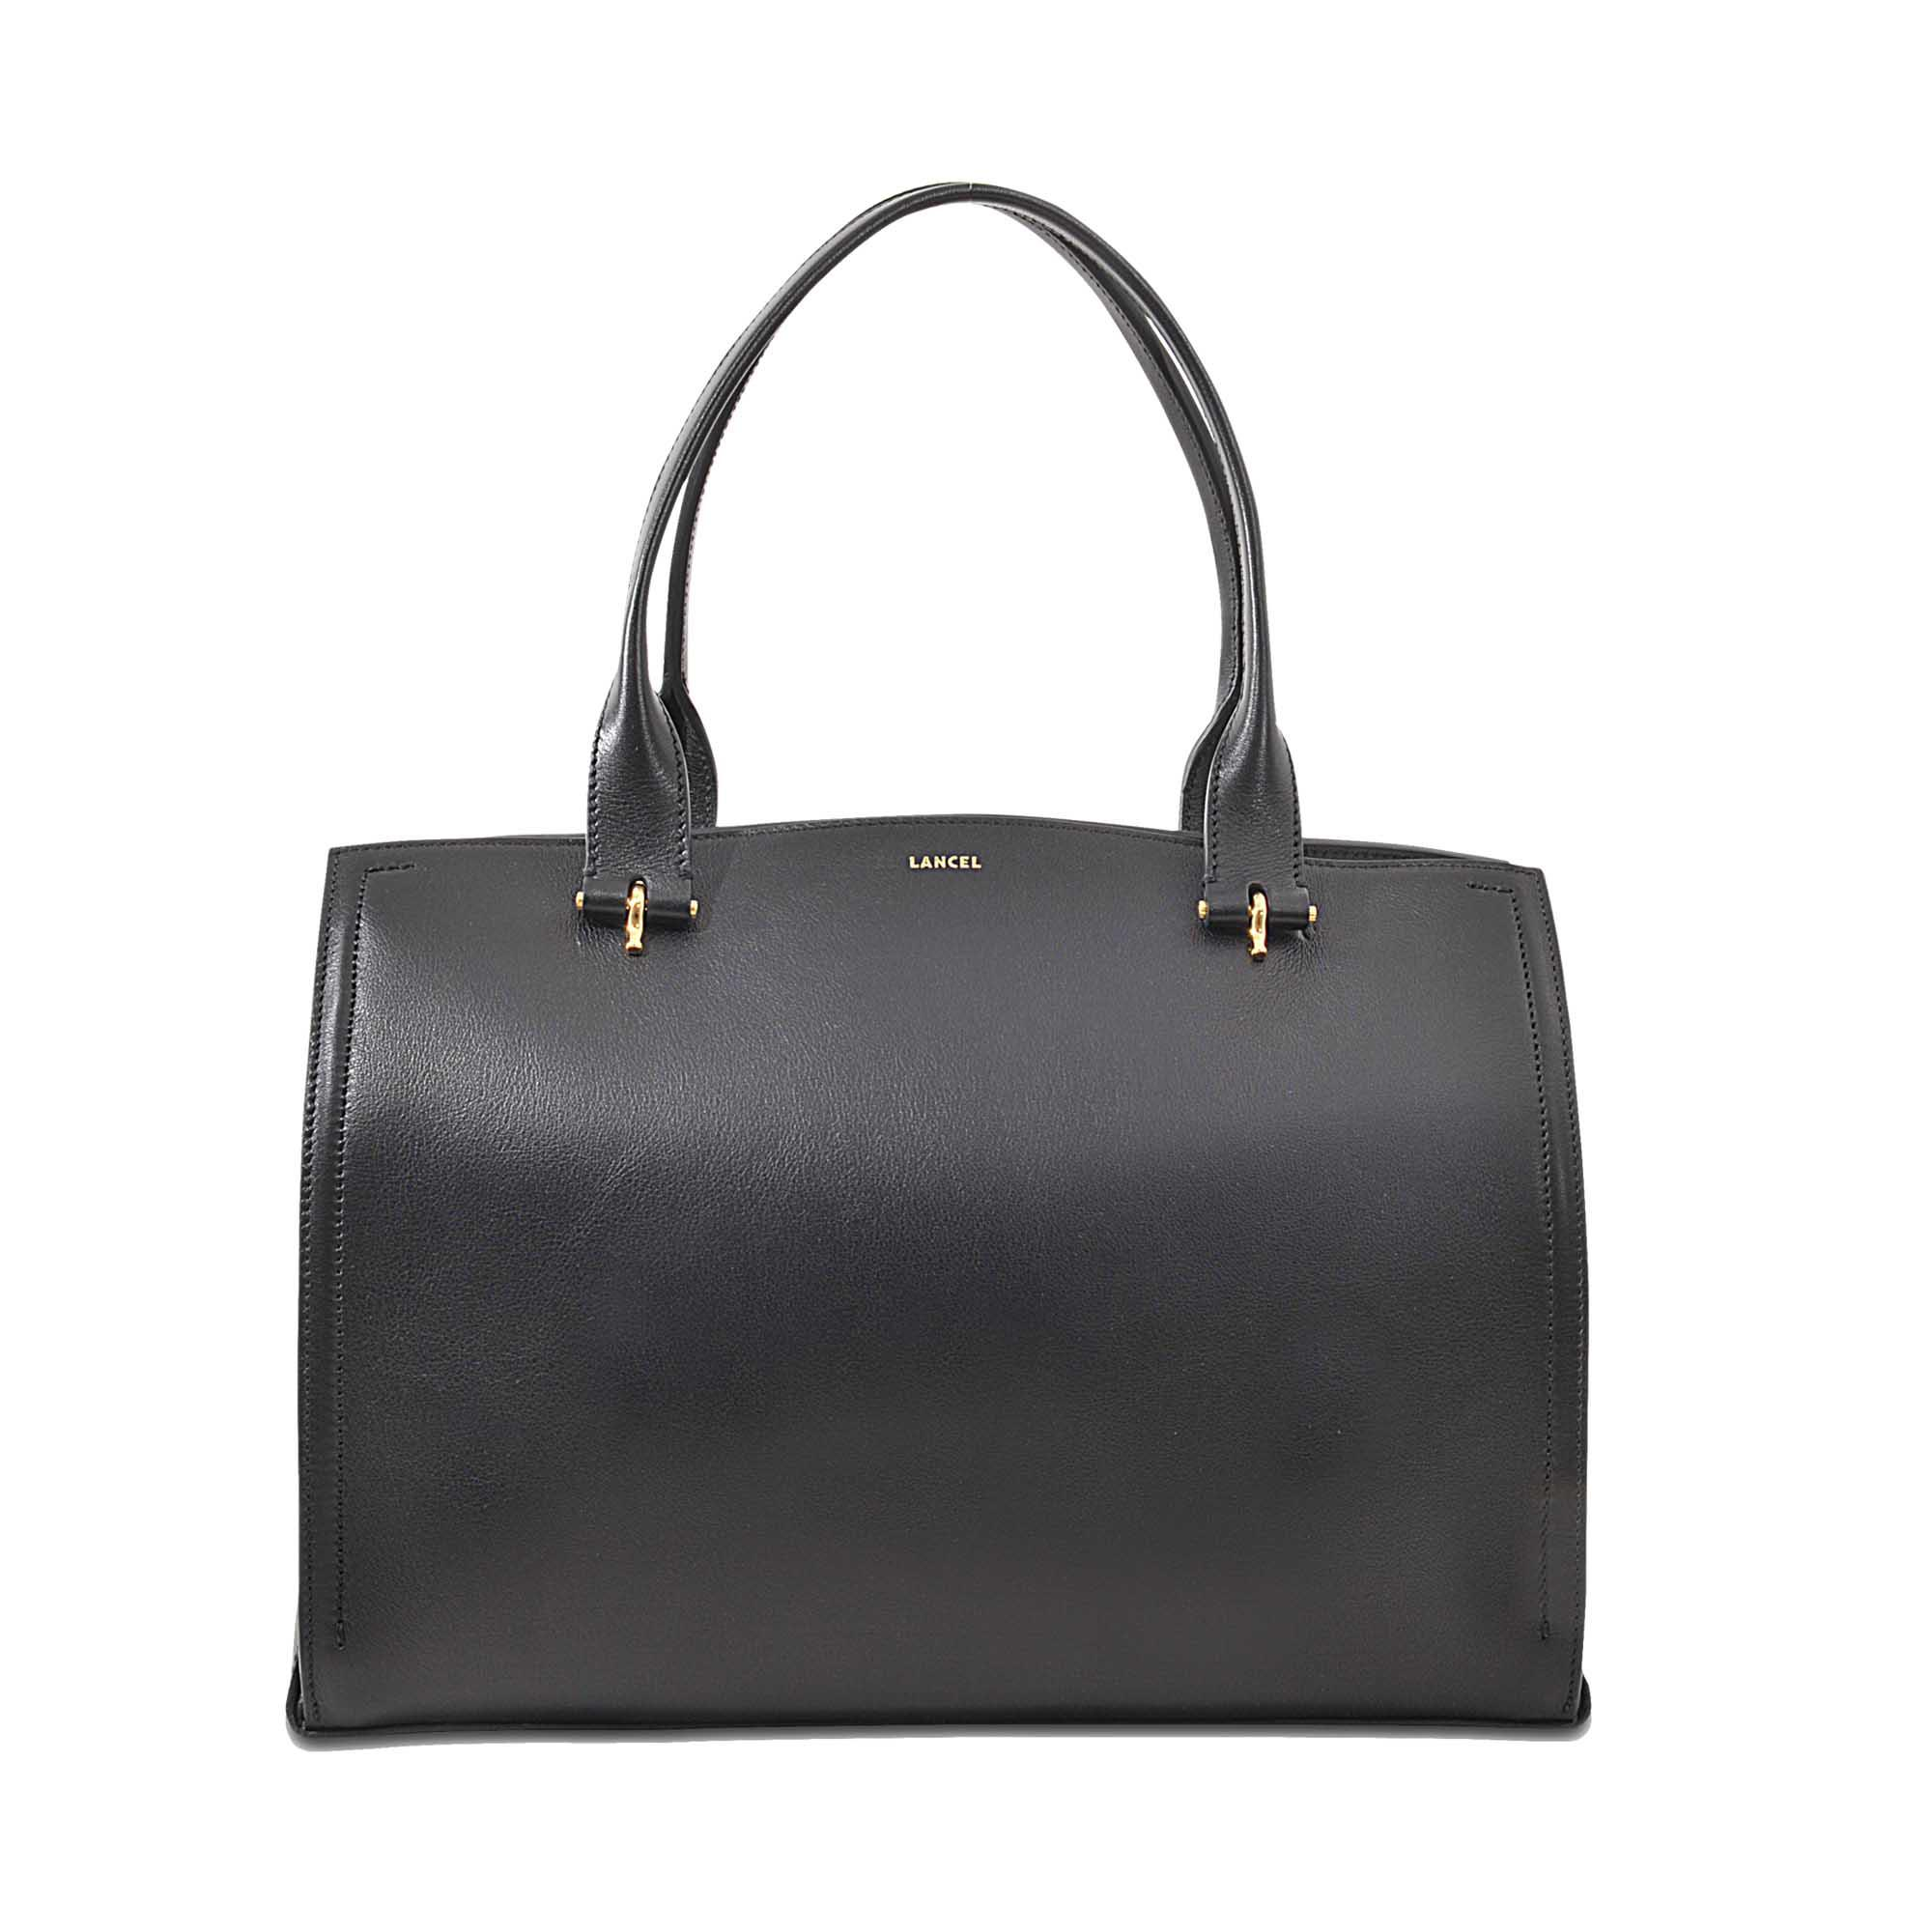 Outlet Store For Sale Cheap Store Jules Large Shoulder Bag Lancel Free Shipping Popular New Lower Prices m713GnnXq